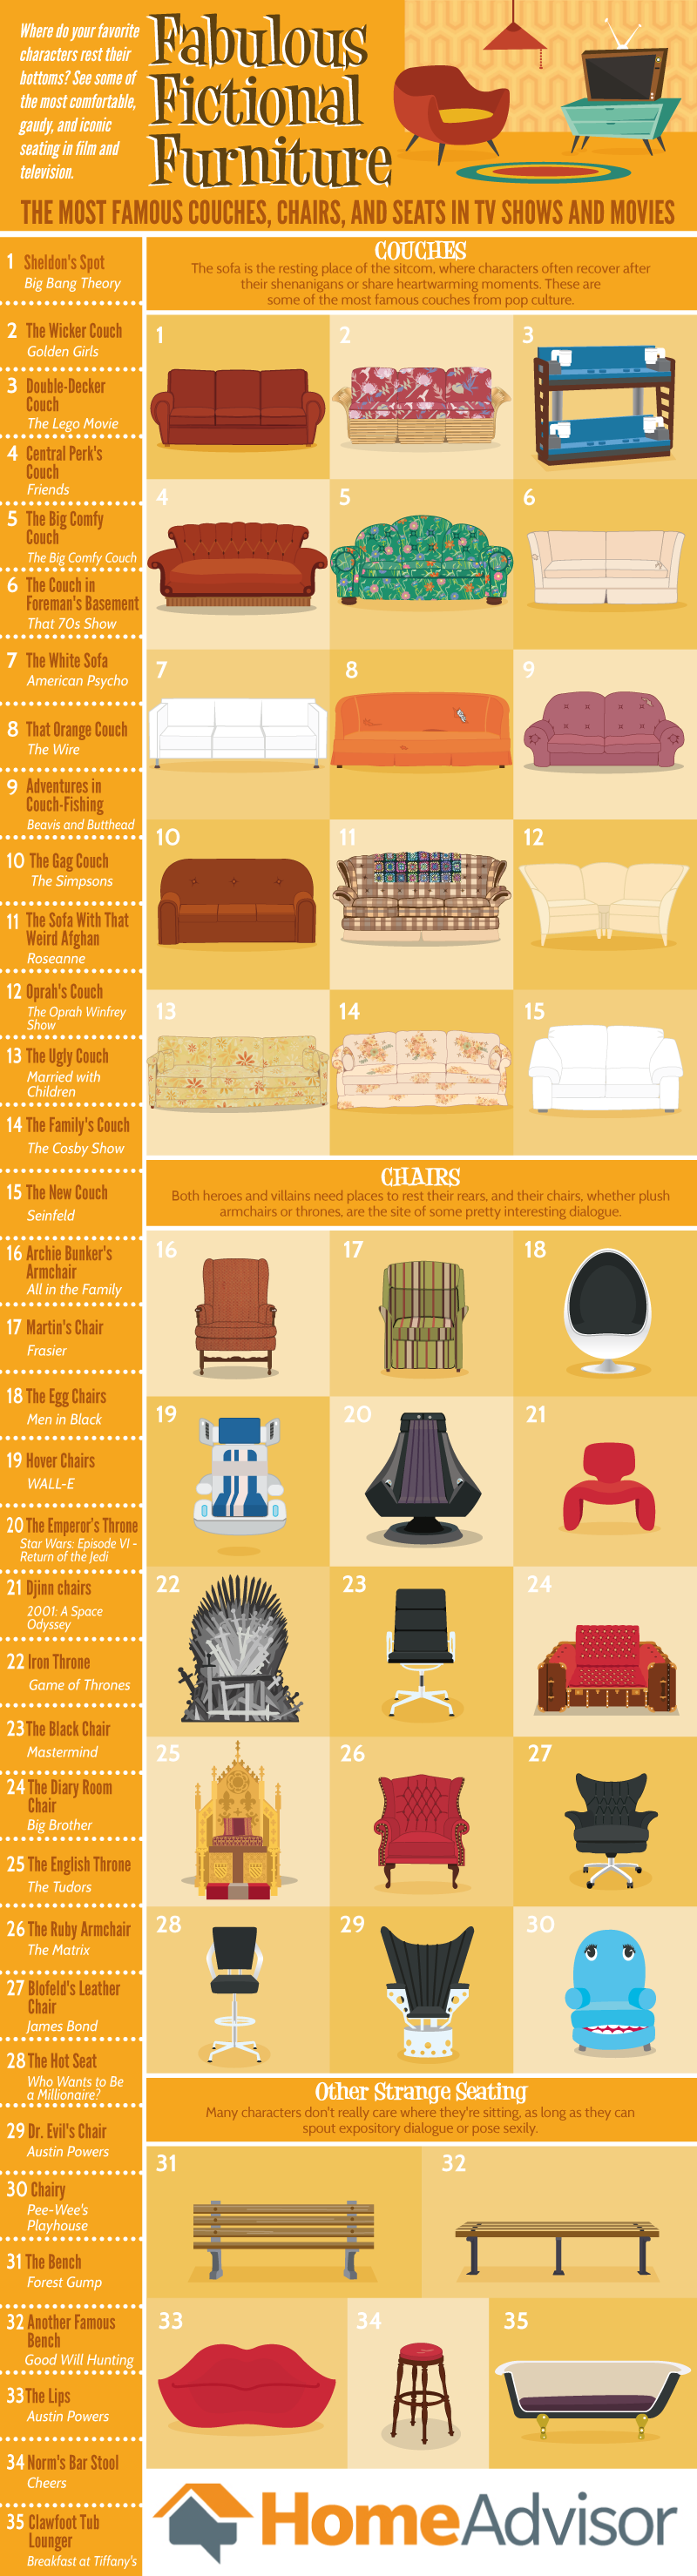 Fictional TV and Movie Couches